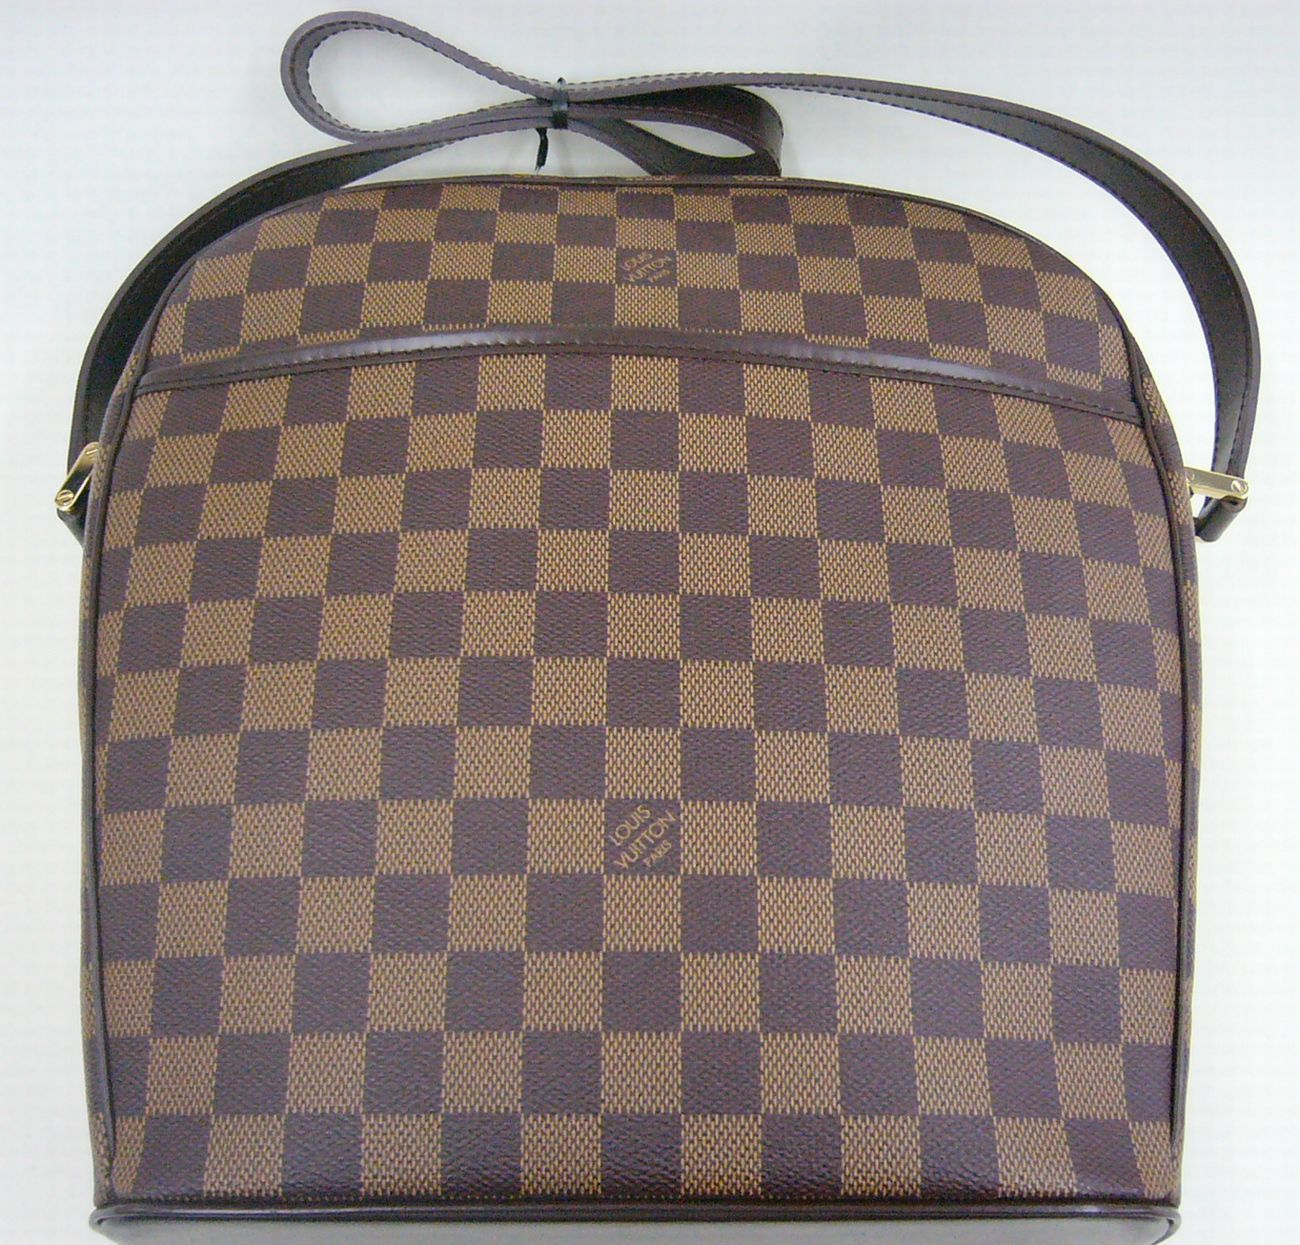 LOUIS VUITTON イパネマGM N51292